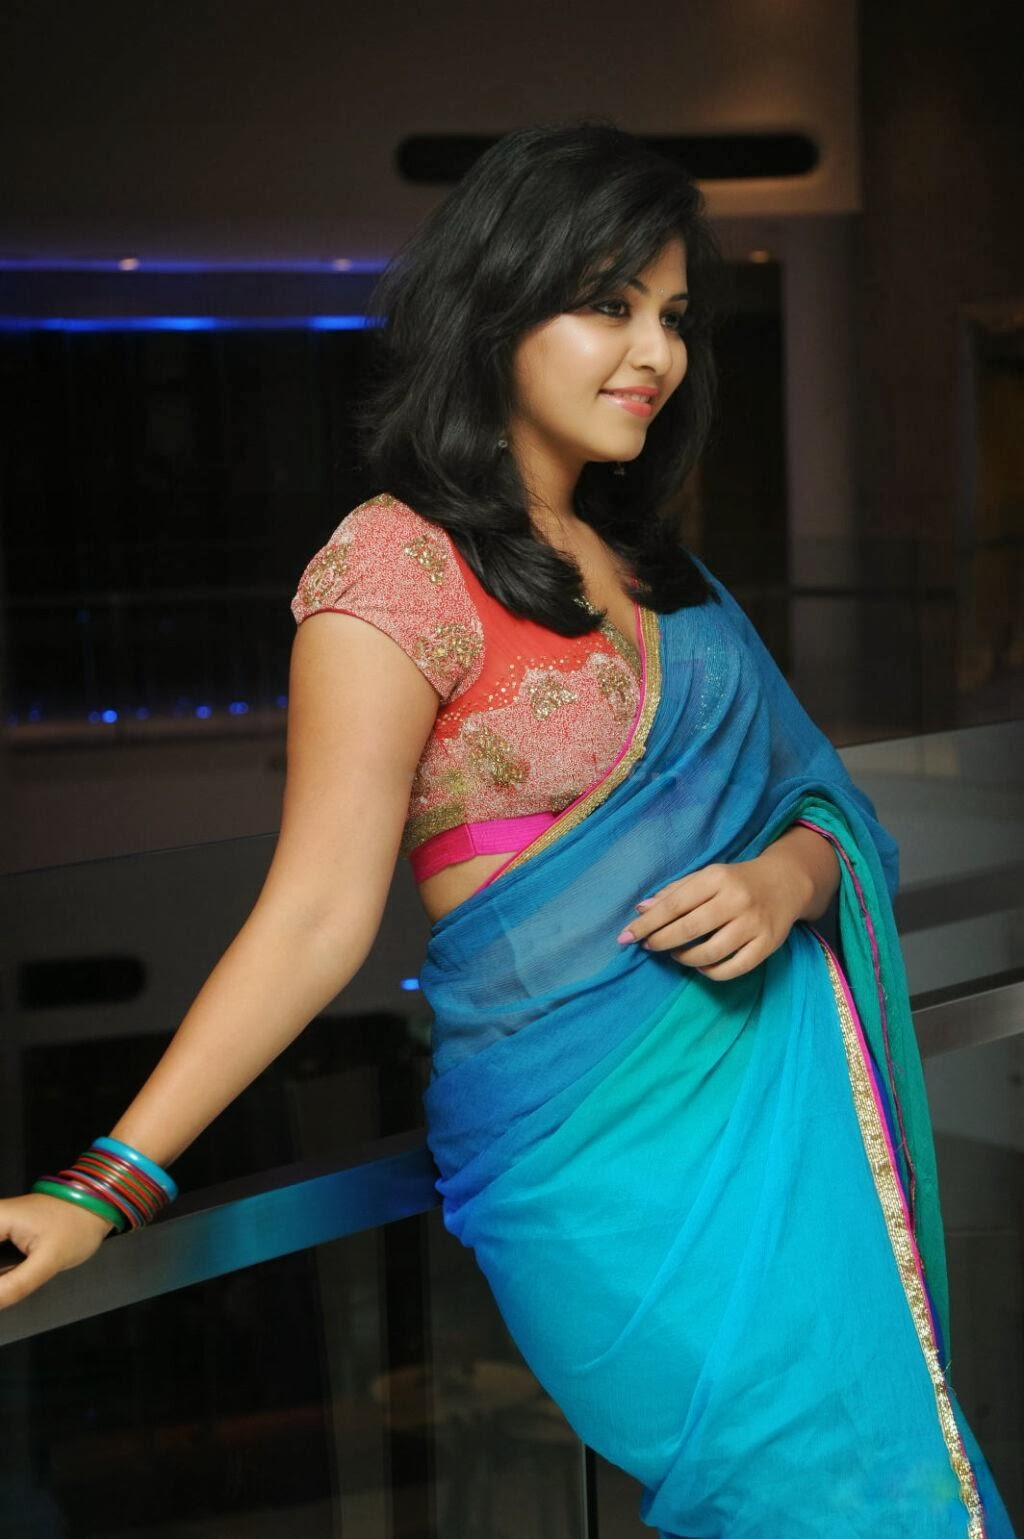 Anjali spicy photo sin saree, Anjali spicy pics